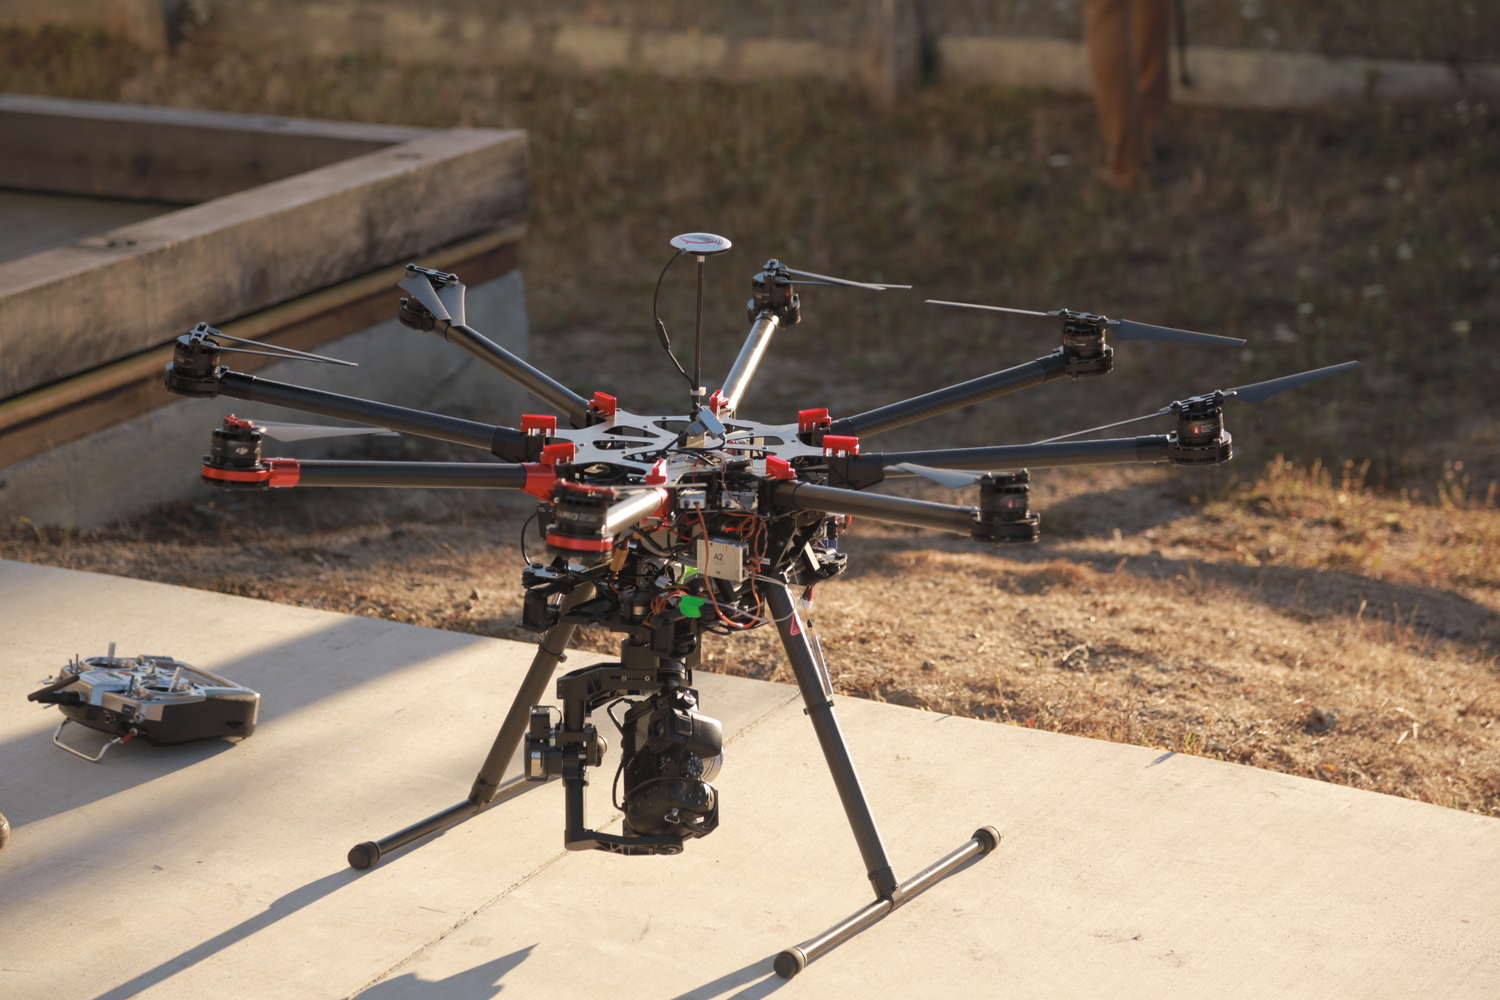 The eight rotor helicopter drone used to film Drone Boning